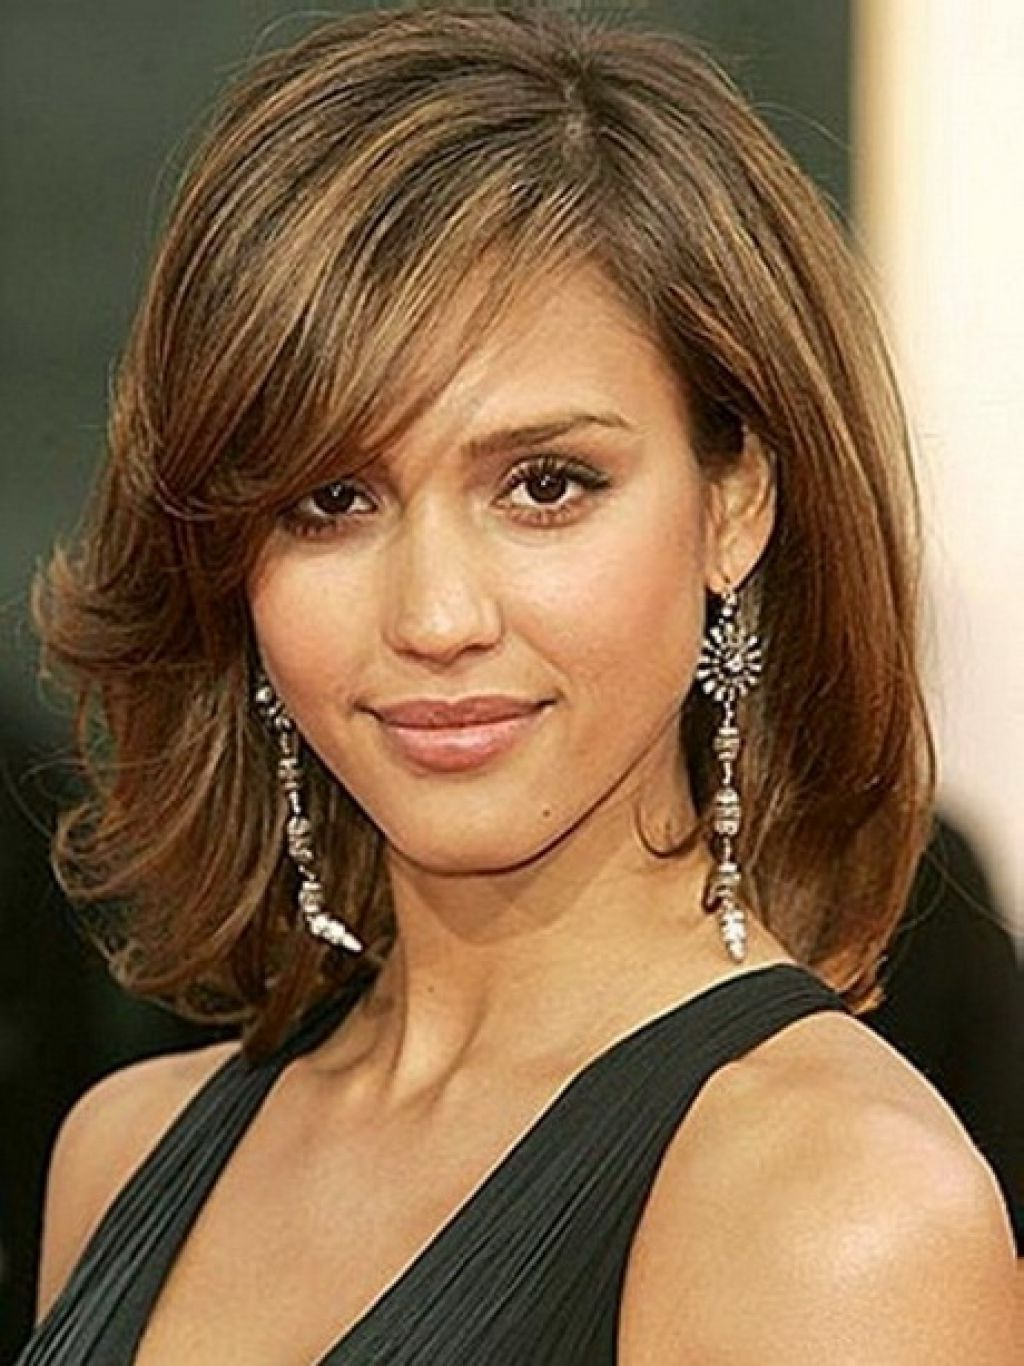 Medium Hairstyles For Round Faces And Fine Hair – Hairstyle For In Famous Medium Hairstyles For Round Faces And Fine Hair (View 3 of 20)